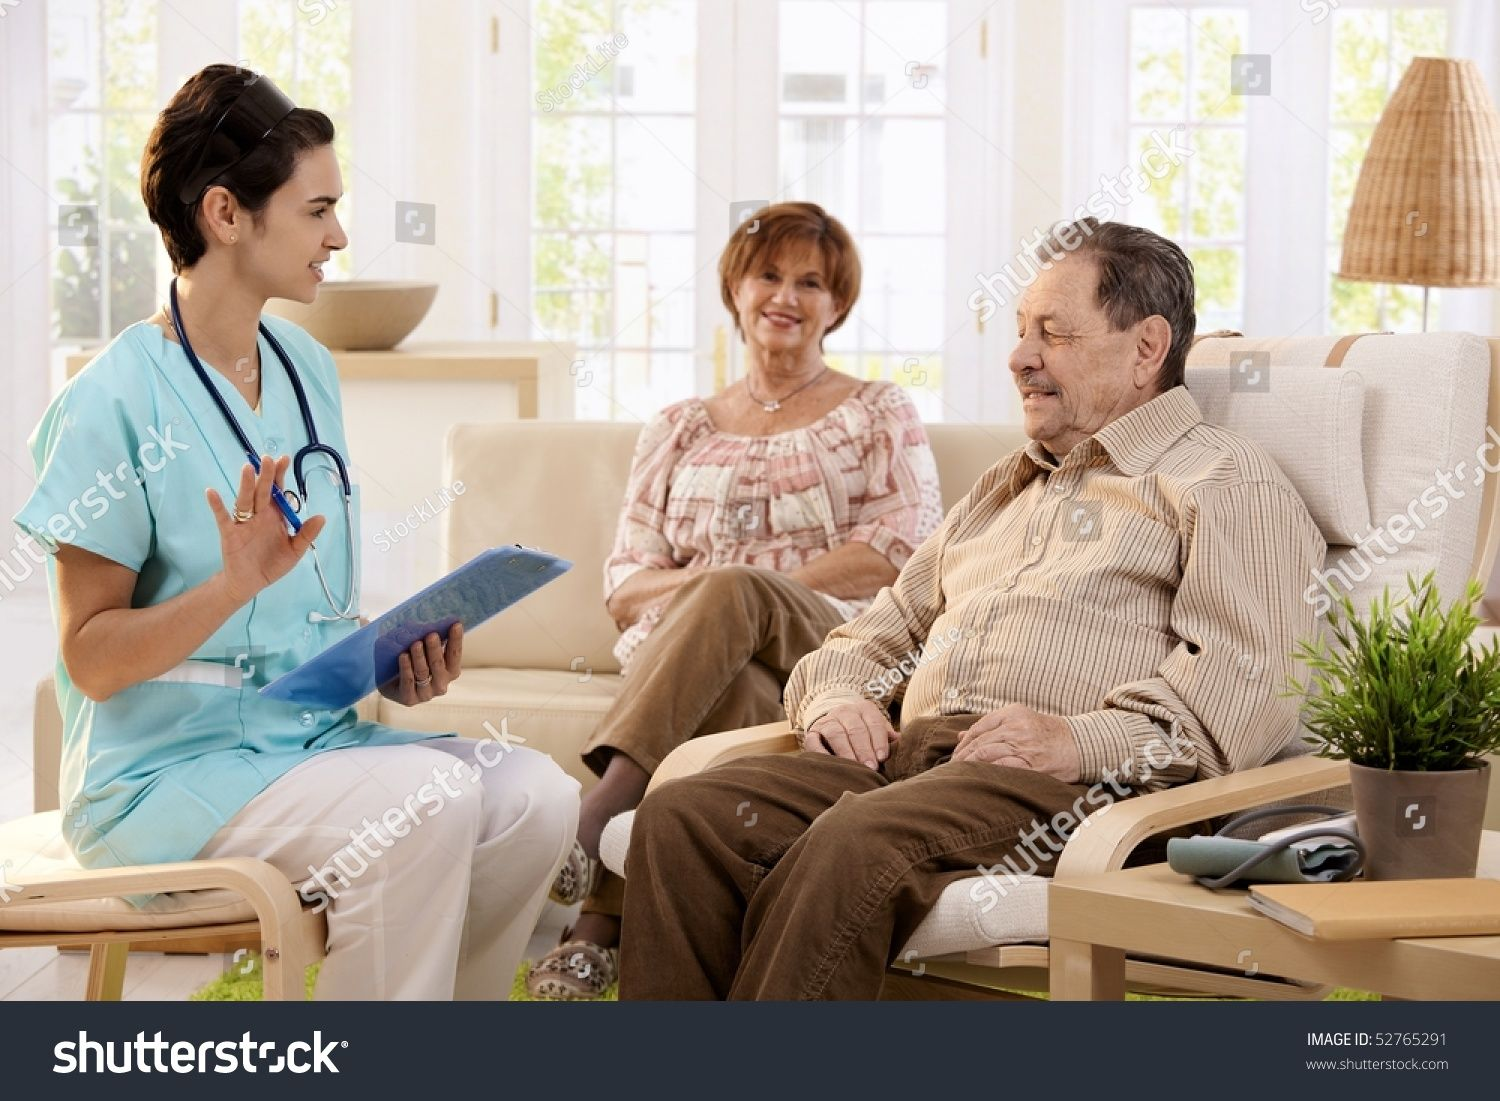 Nurse Talking With Elderly People And Making Notes During Examination At Home Smiling Ad Sponsored Elderly In 2020 Home Health Aide Healthcare Jobs Home Health